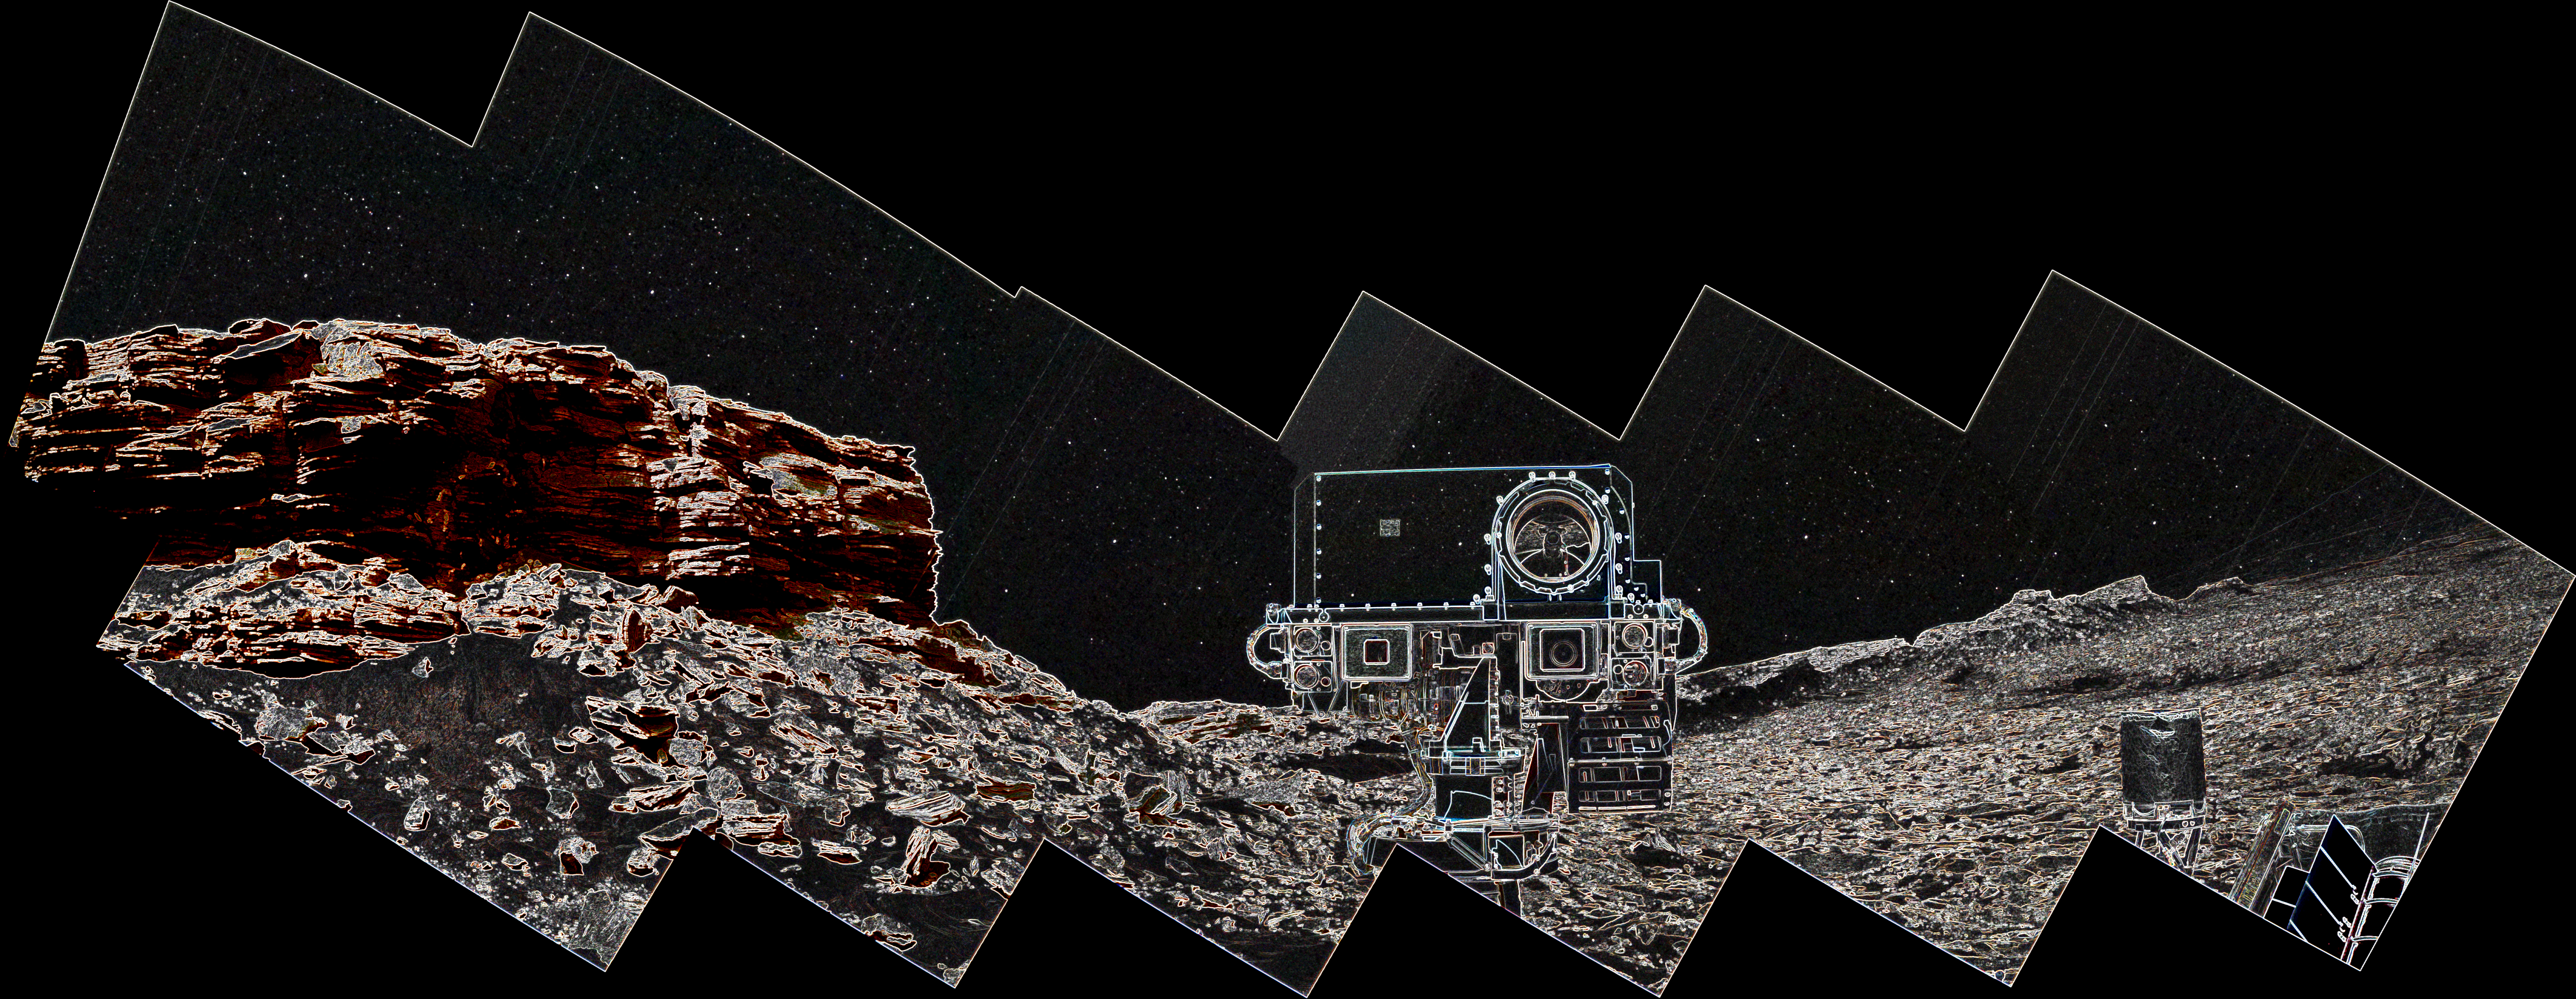 panoramic-curiosity-rover-view-mahli-1e-with-edge-detection-sol-1463-was-life-on-mars